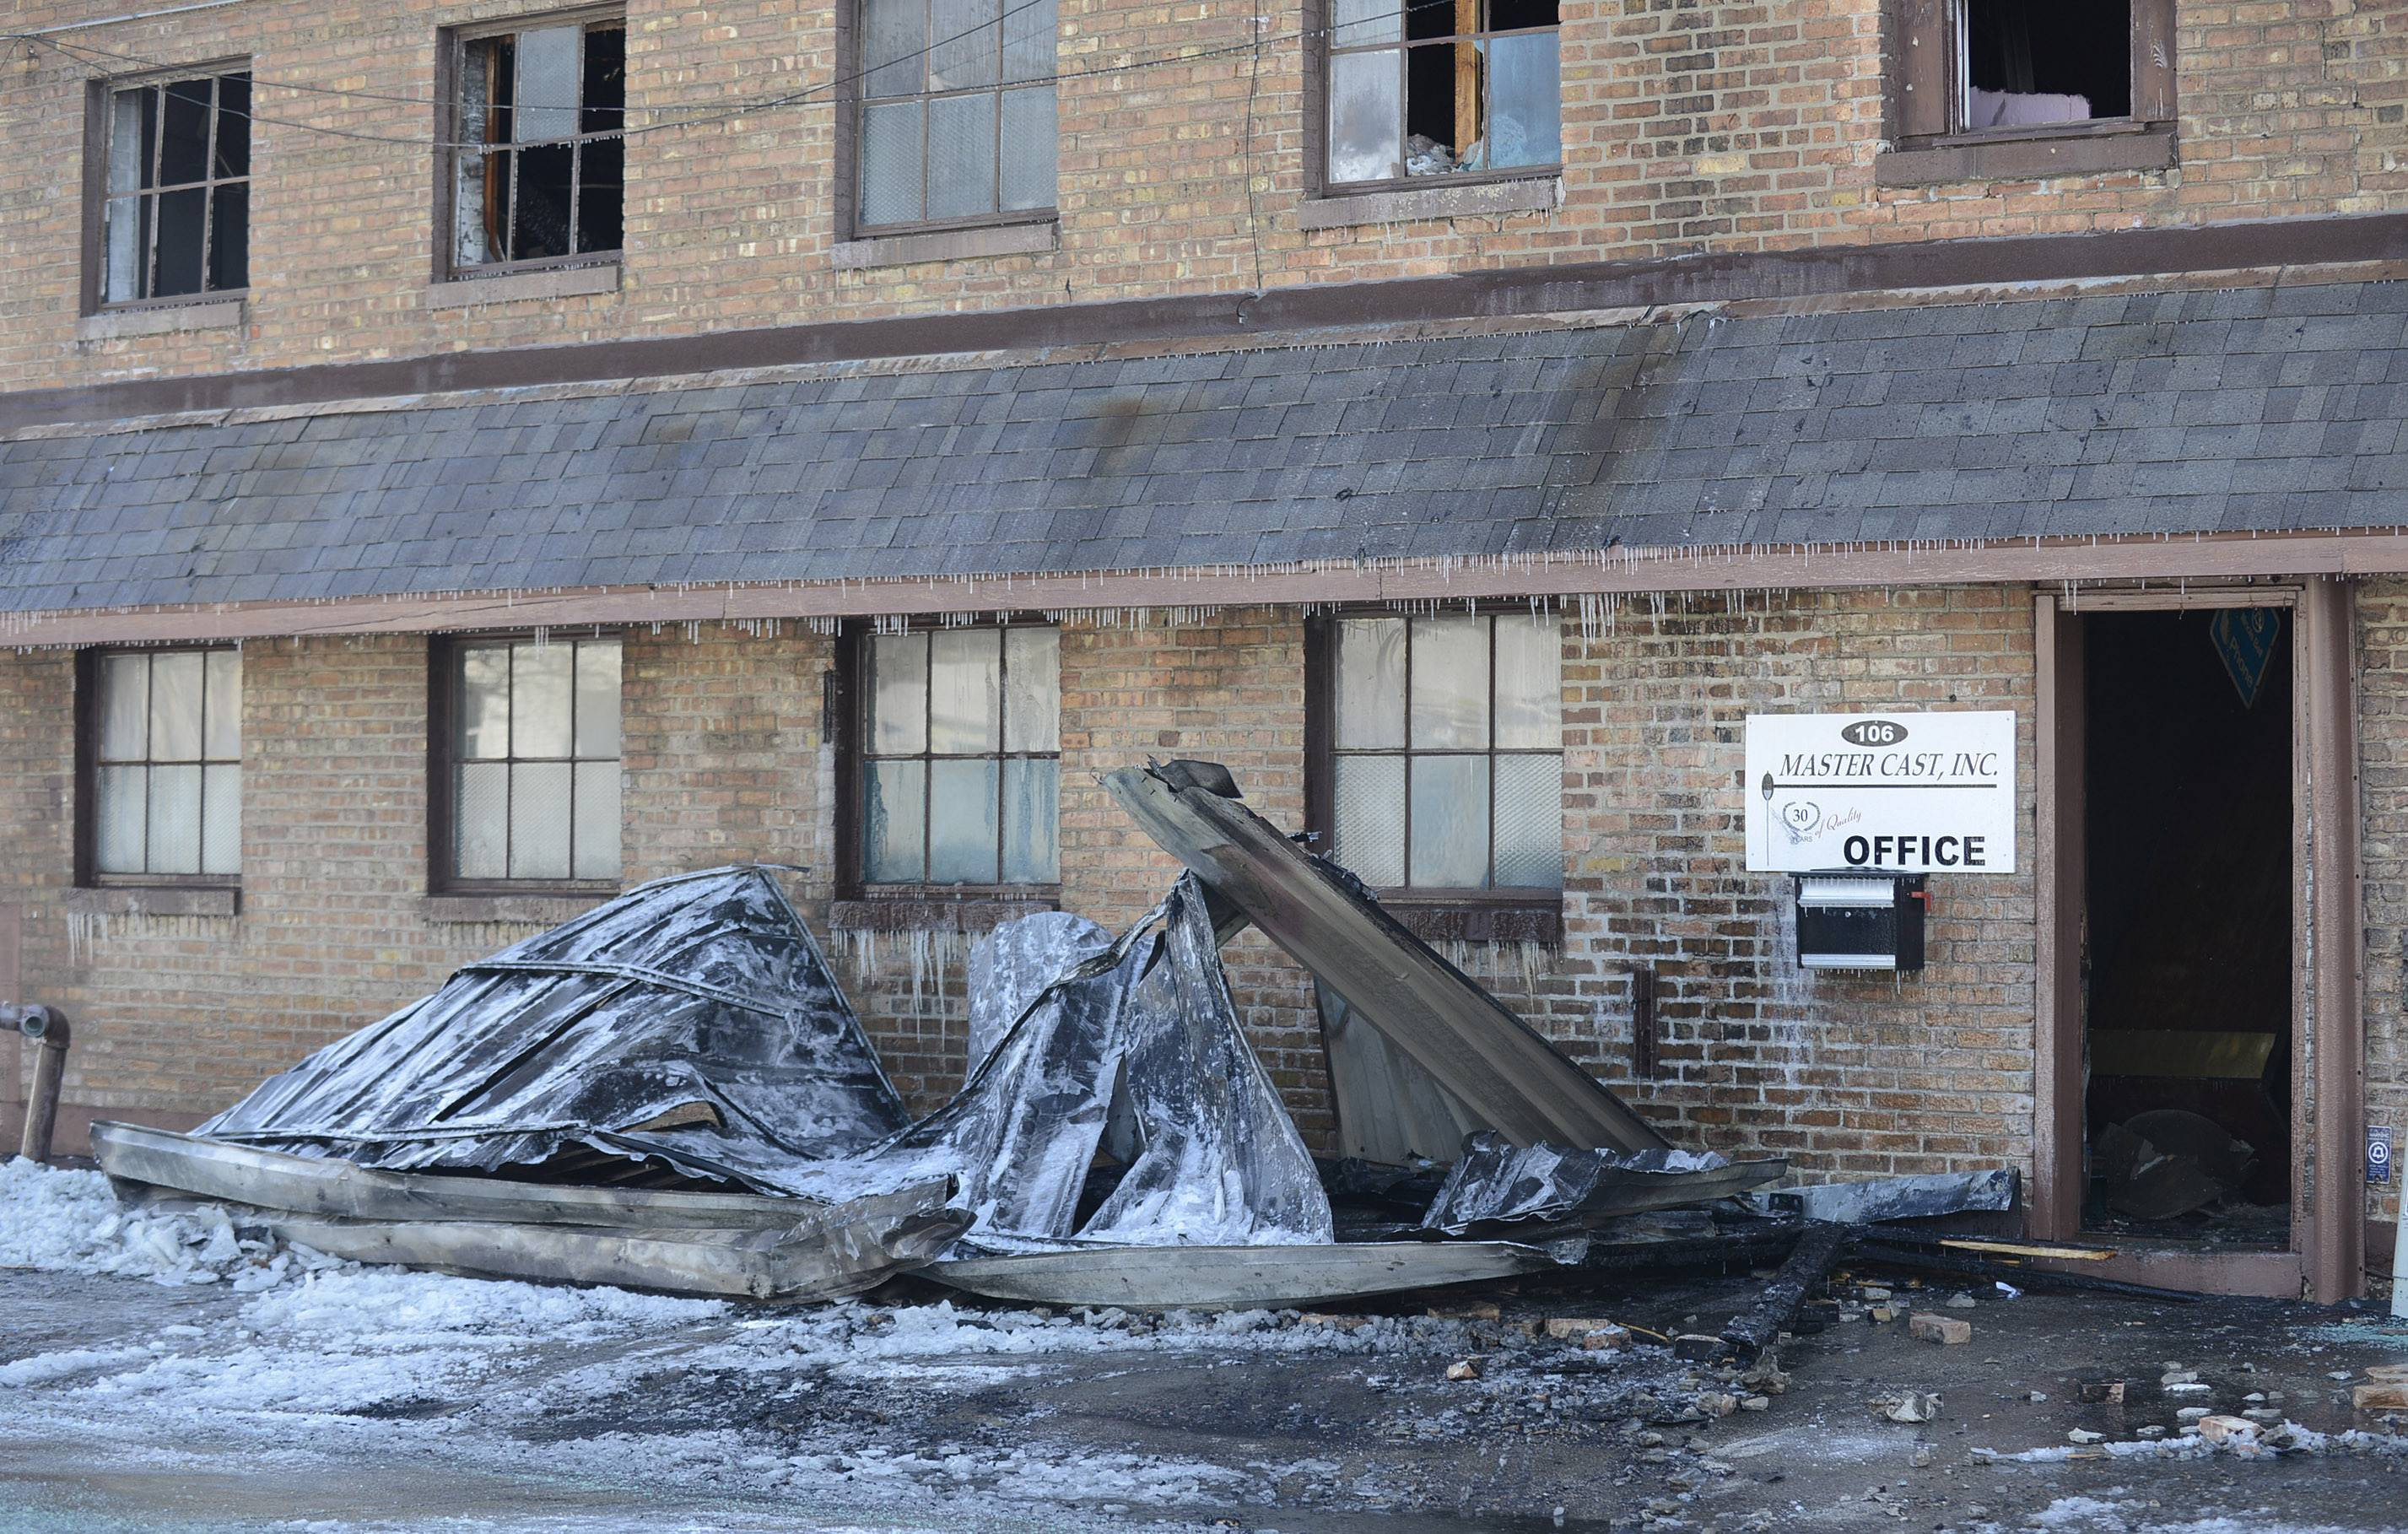 The investigation continued Thursday into what caused the fire Wednesday night at Master Cast in Batavia.